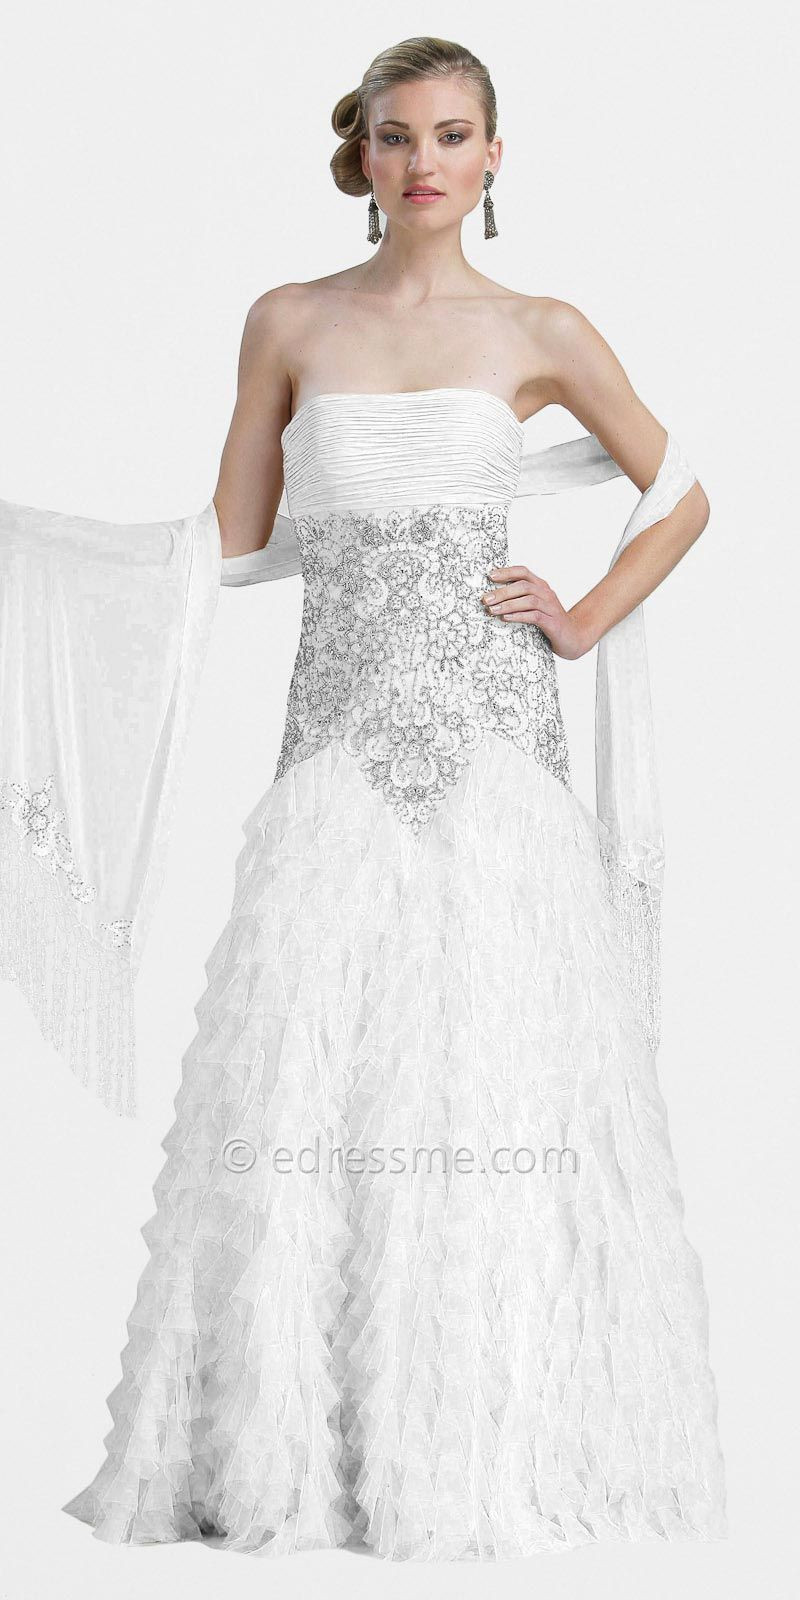 White vintage formal gowns by sue wong at edressme vintage fashion